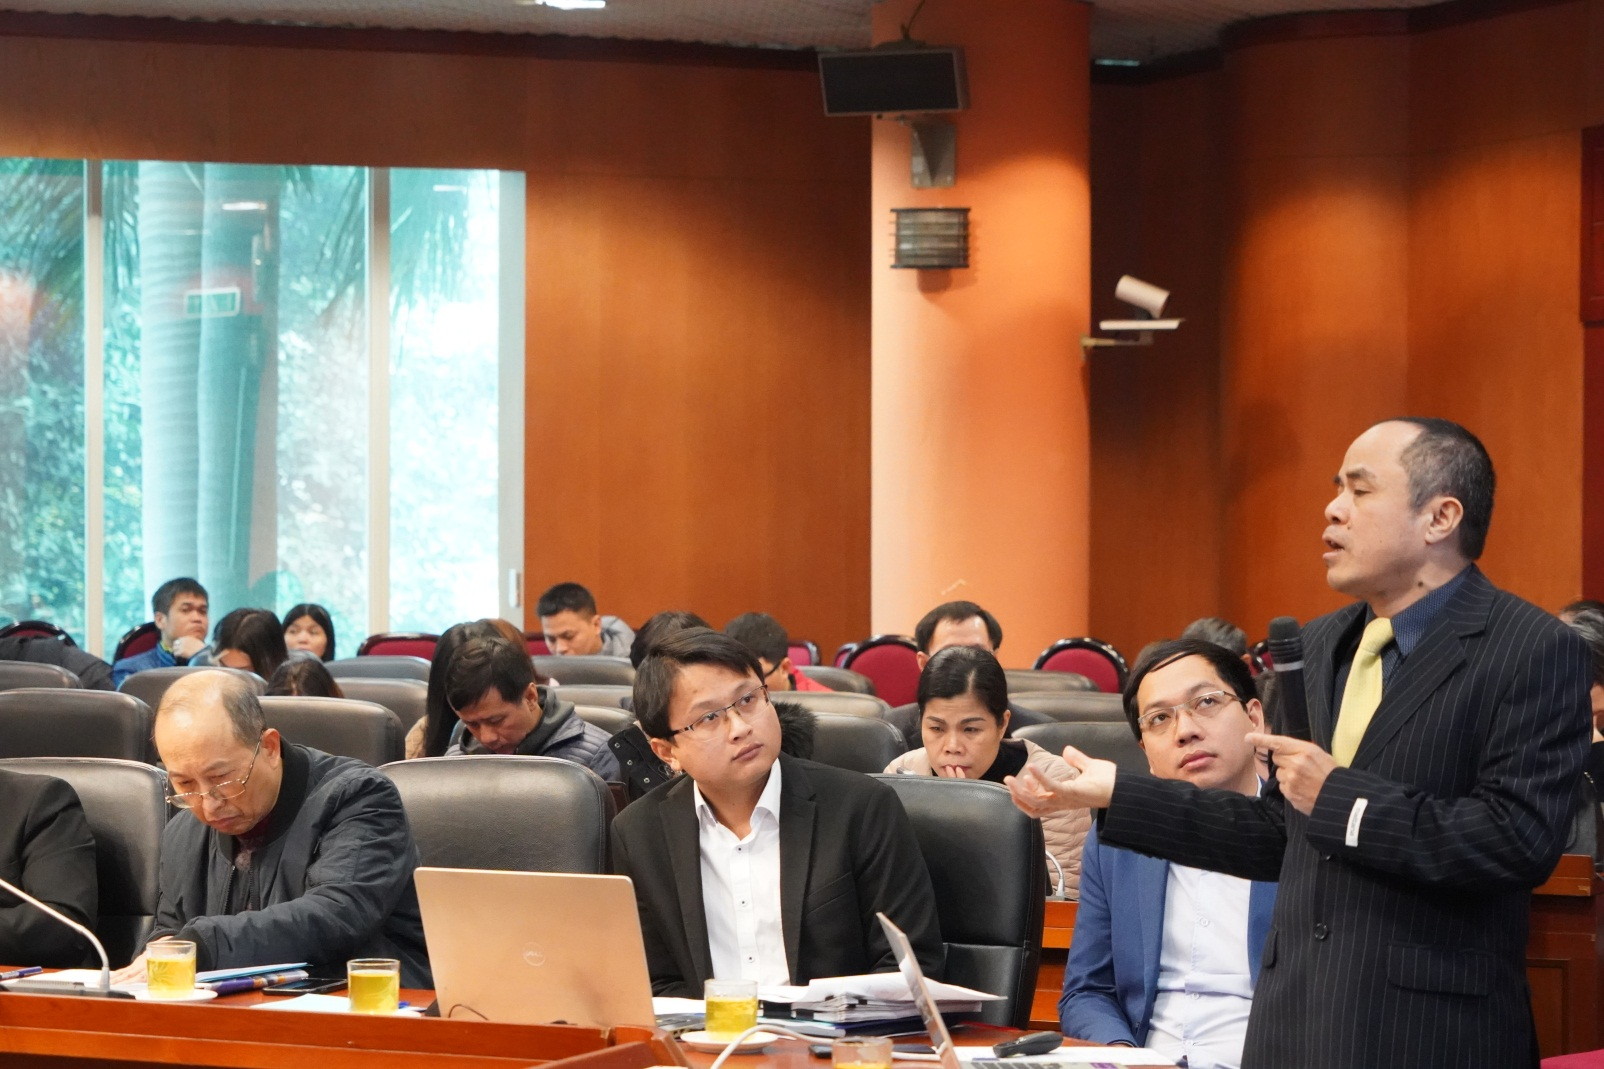 TS. Le Xuan Sang, Deputy Director of the Vietnam Economic Institute, gave a presentation at the seminar